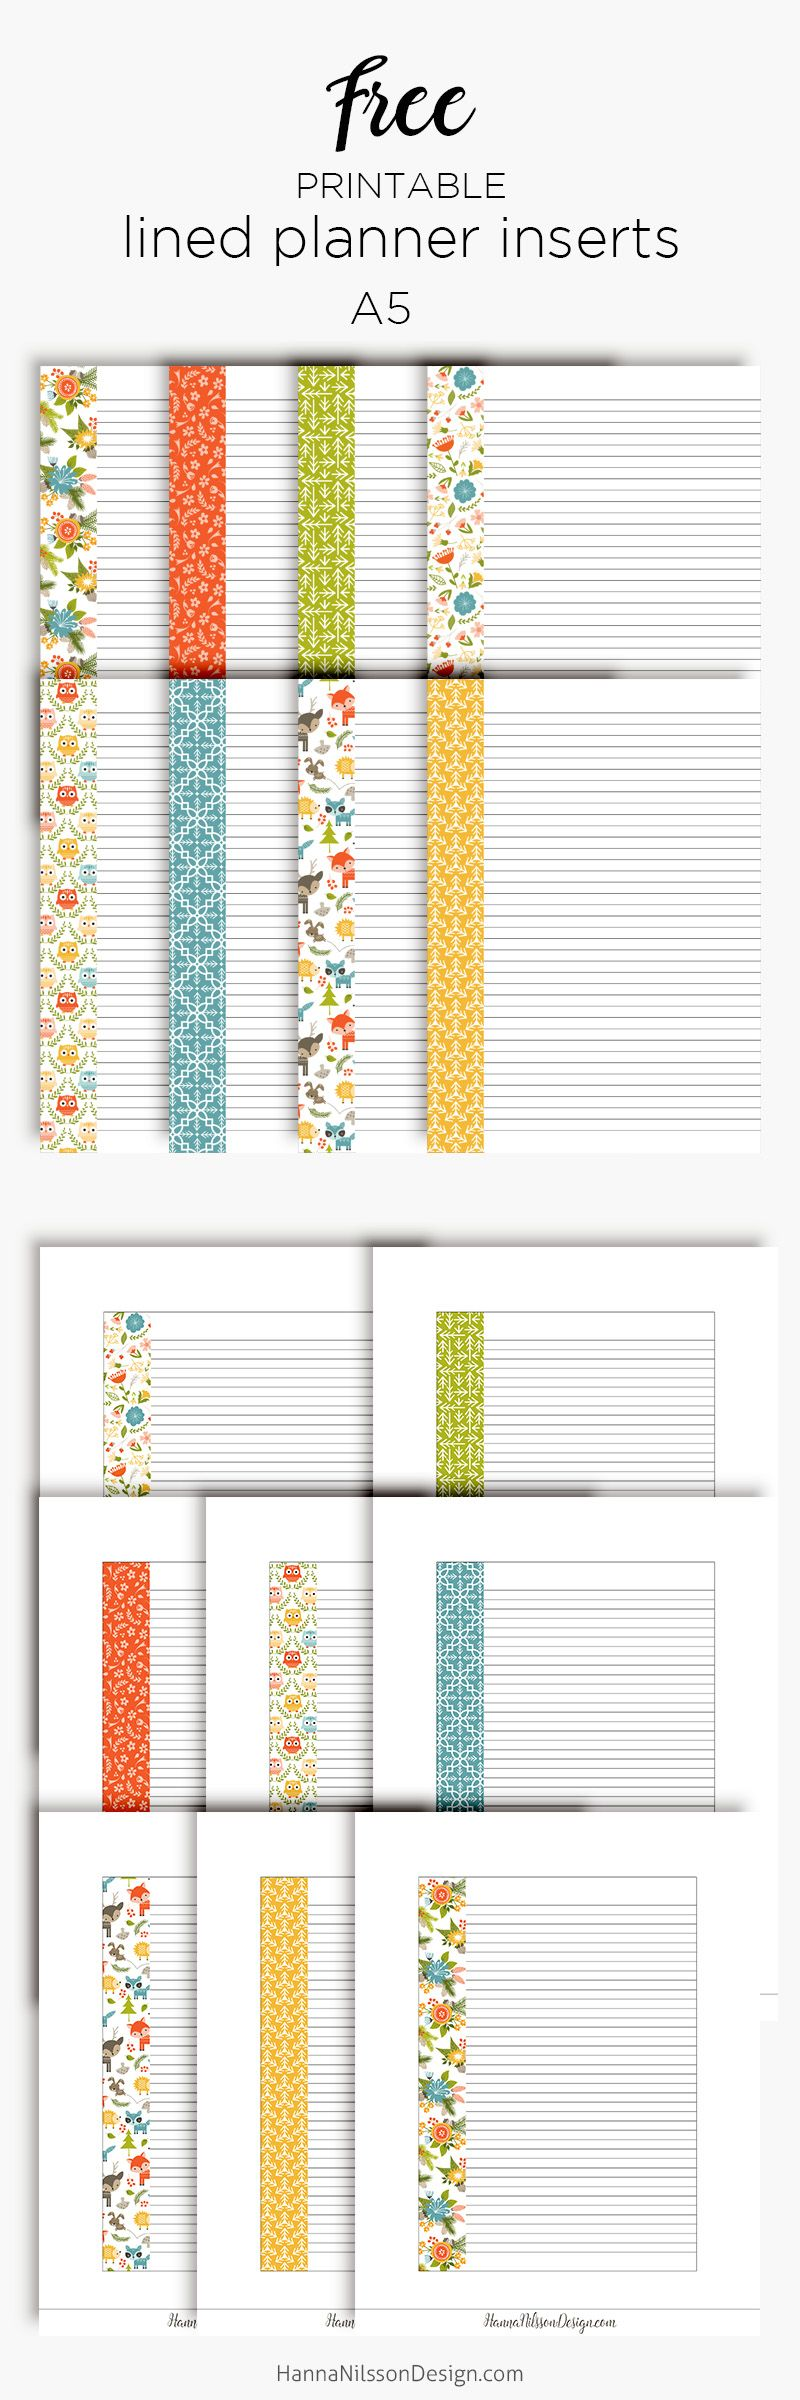 Lined planner inserts | Free printable download | Happy Planner | A5 ...